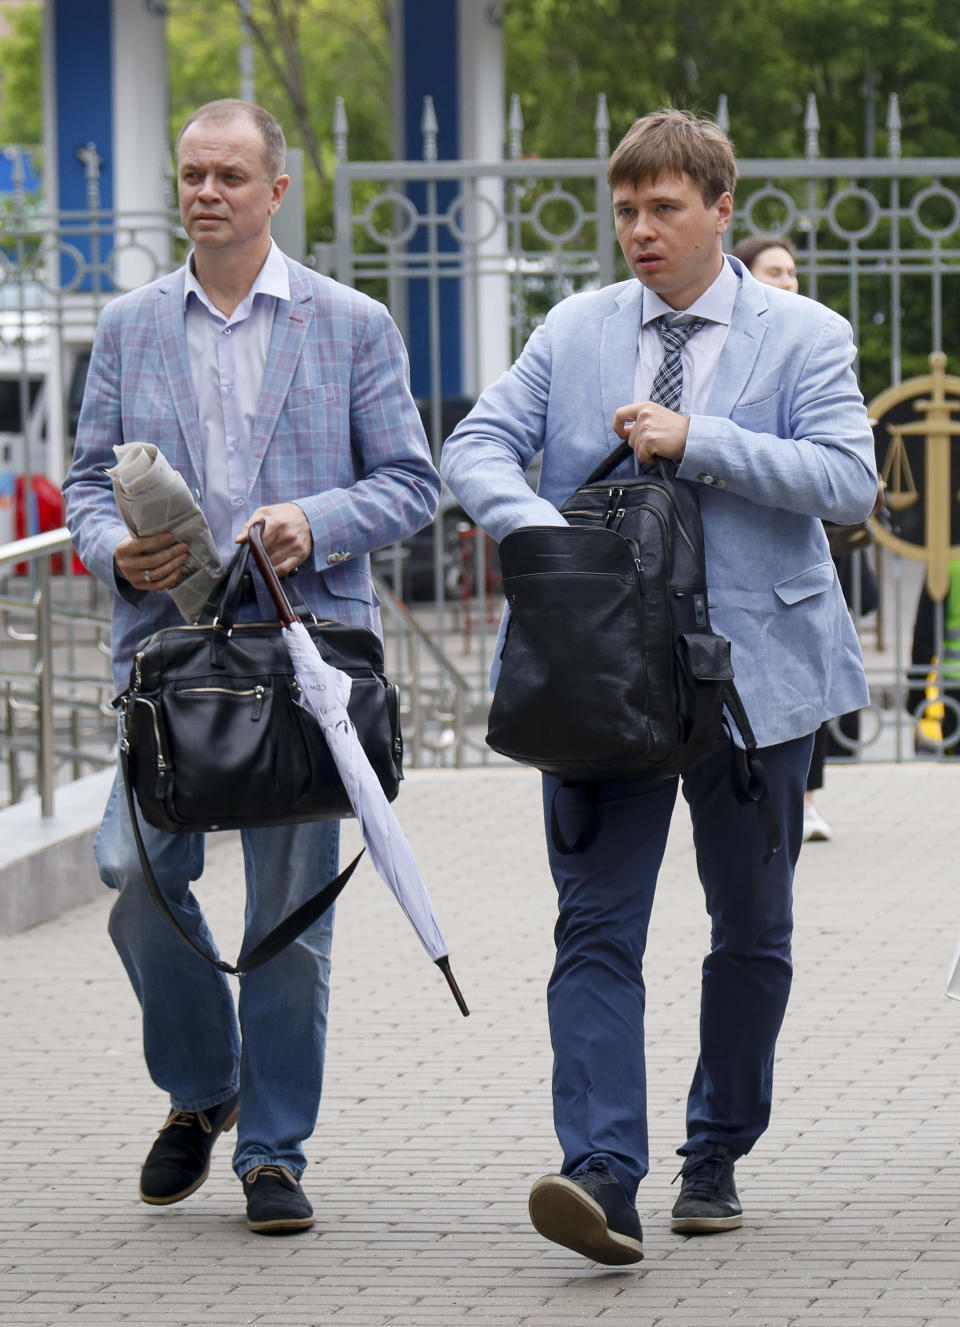 """FILE - In this June 9, 2021 file photo, Russian lawyers Ivan Pavlov, left, and Yevgeny Smirnov arrive to attend a court session in front of Moscow Court in Moscow, Russia. A rights group in Russia announced Sunday July 18, 2021, that it was shutting down, citing fear of prosecution of its members and supporters after Russian authorities blocked its website for allegedly publishing content from an """"undesirable"""" organization. Team 29, including its prominent lawyer Ivan Pavlov, was involved in defending Navalny's foundation in court. In April, Russian authorities launched a criminal case against Pavlov, who is also representing a former Russian journalist accused of treason in a high-profile case, accusing him of disclosing information related to a police investigation. (AP Photo/Alexander Zemlianichenko, File)"""